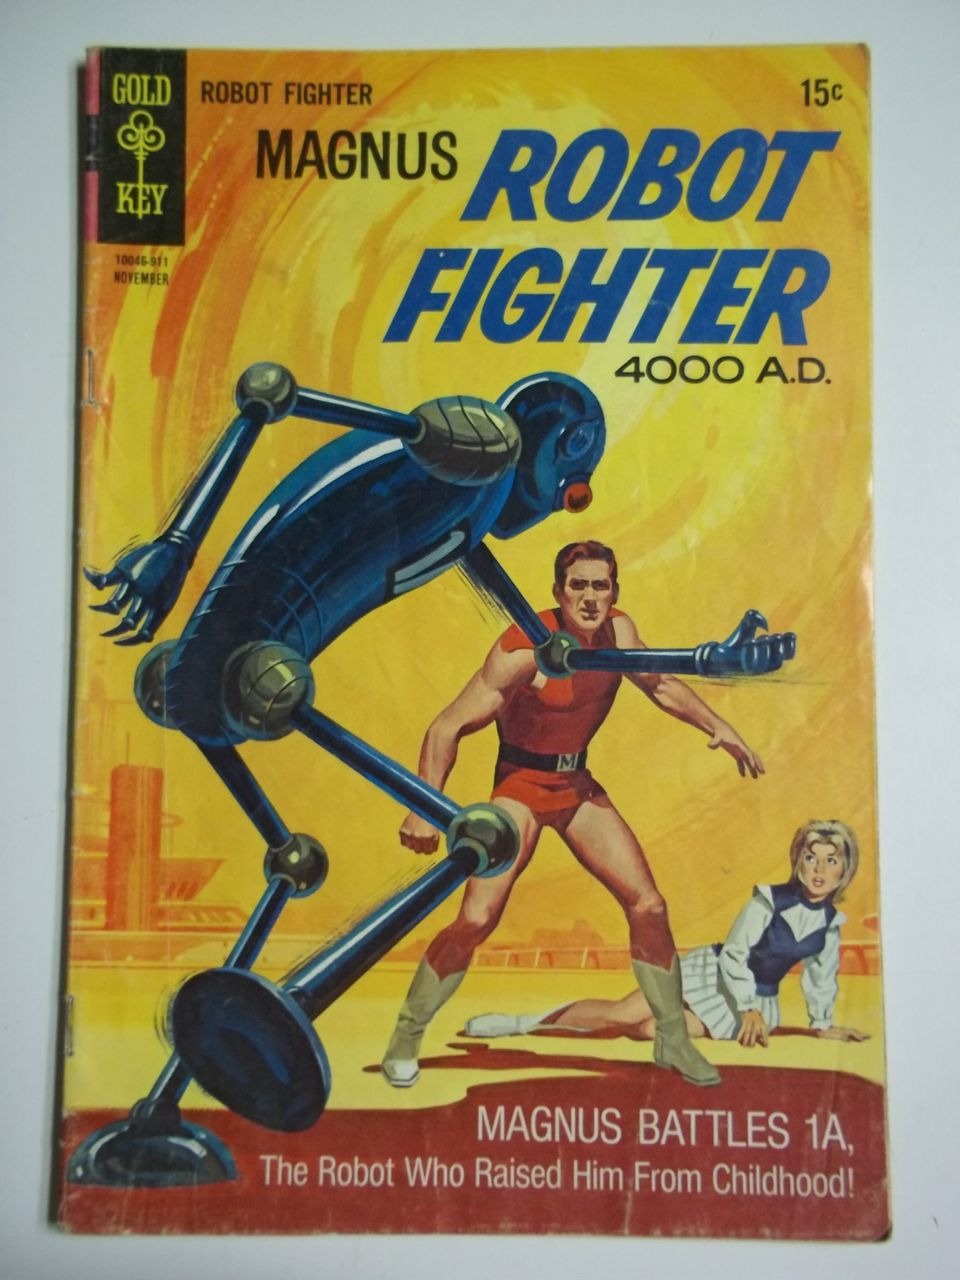 Gold Key Comics Magnus Robot Fighter No. 28, Nov. 1969